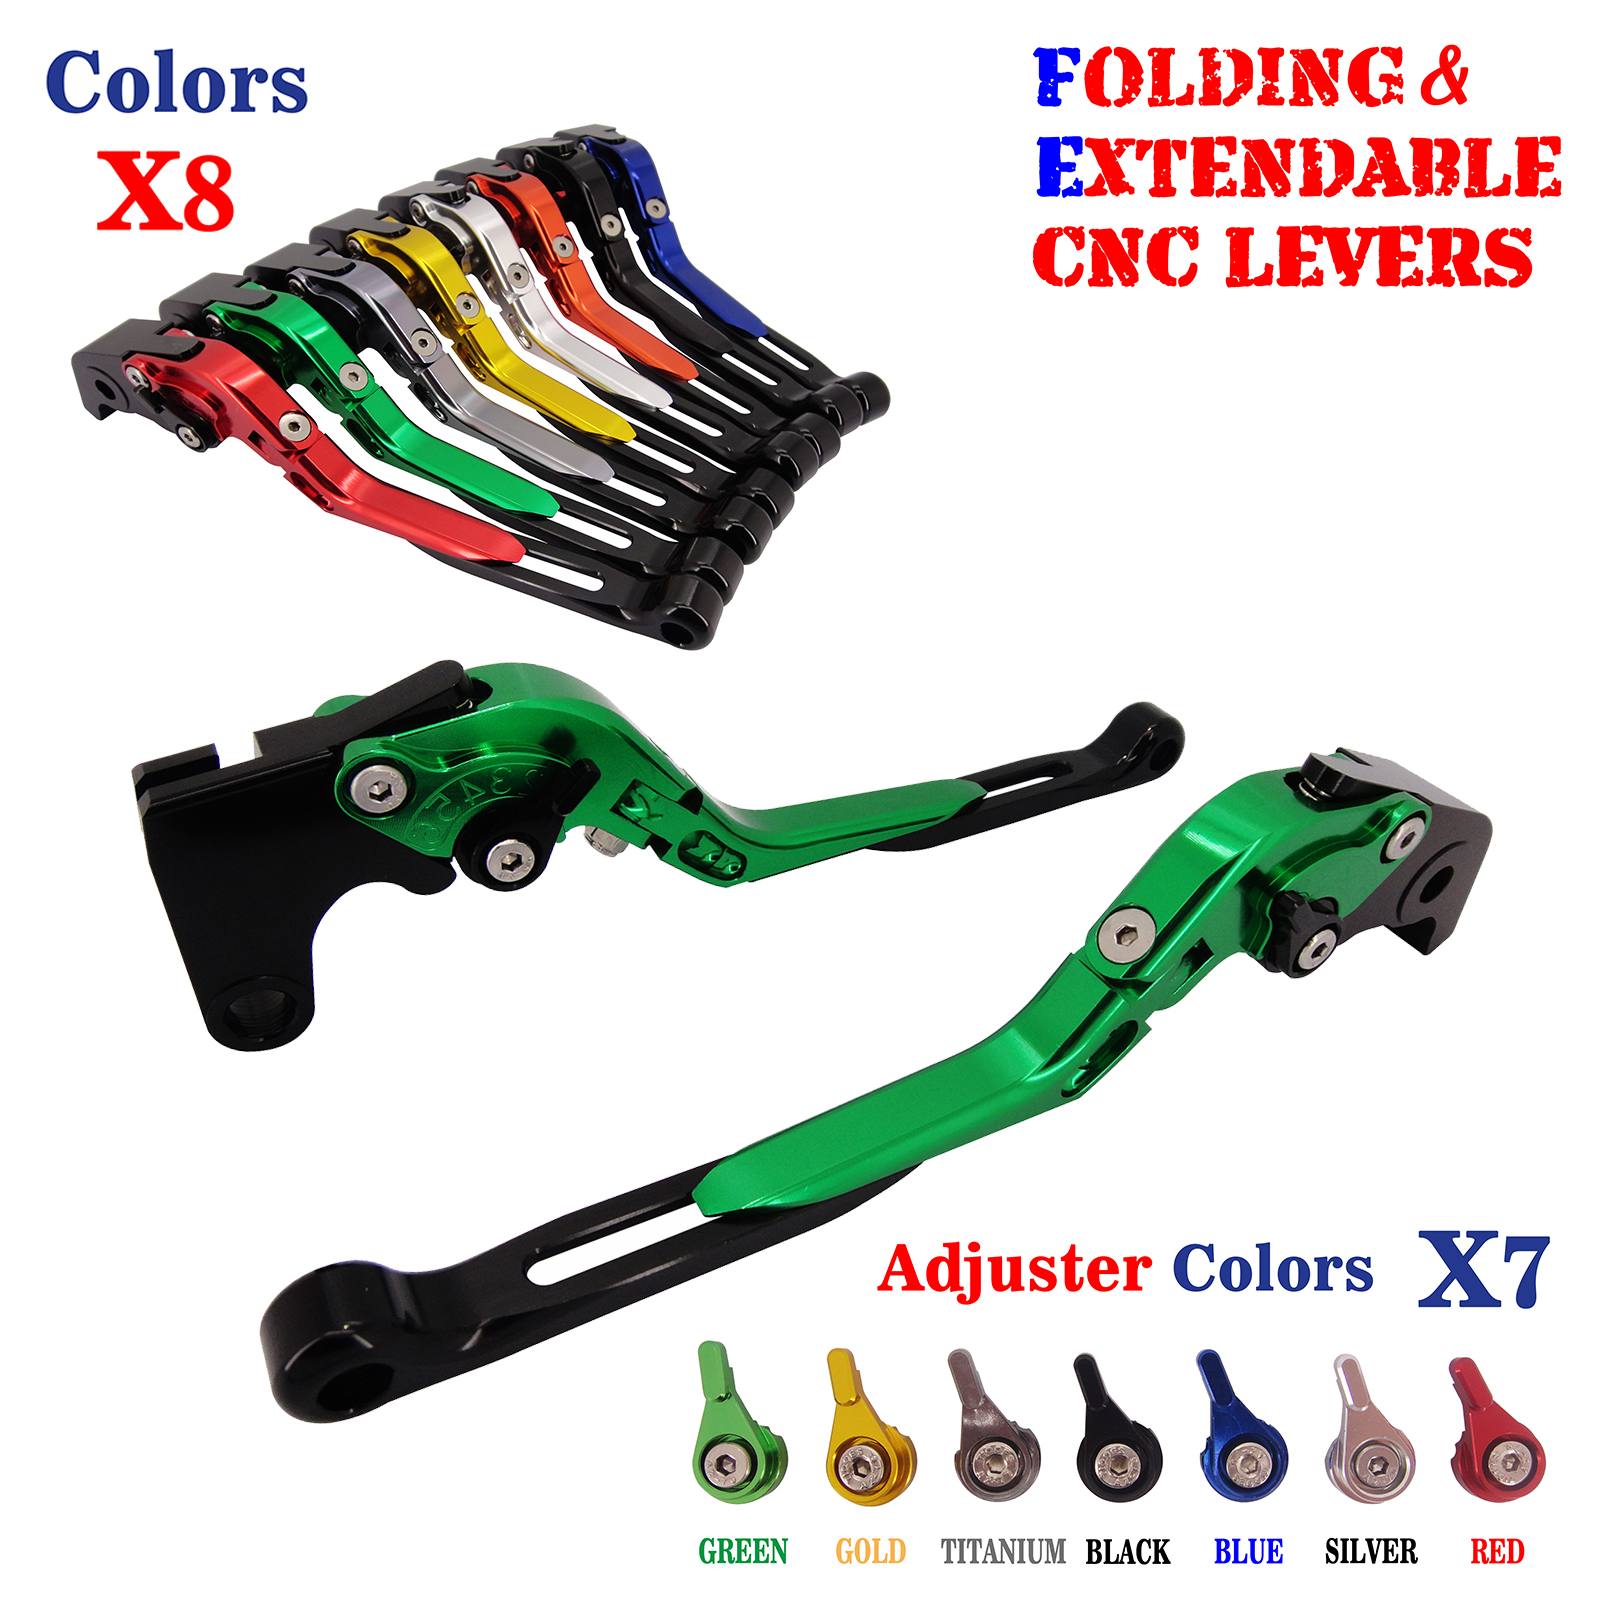 For Kawasaki ZX-6R/ZX636 ZX-10R Z750R Z1000 2007-2015 Adjustable  CNC Folding Extendable Brake Clutch Levers kawasaki zx 6r 636 zx 10r 12r 9r gtr1400 изменение рука дроссельной ручки резиновый рукав